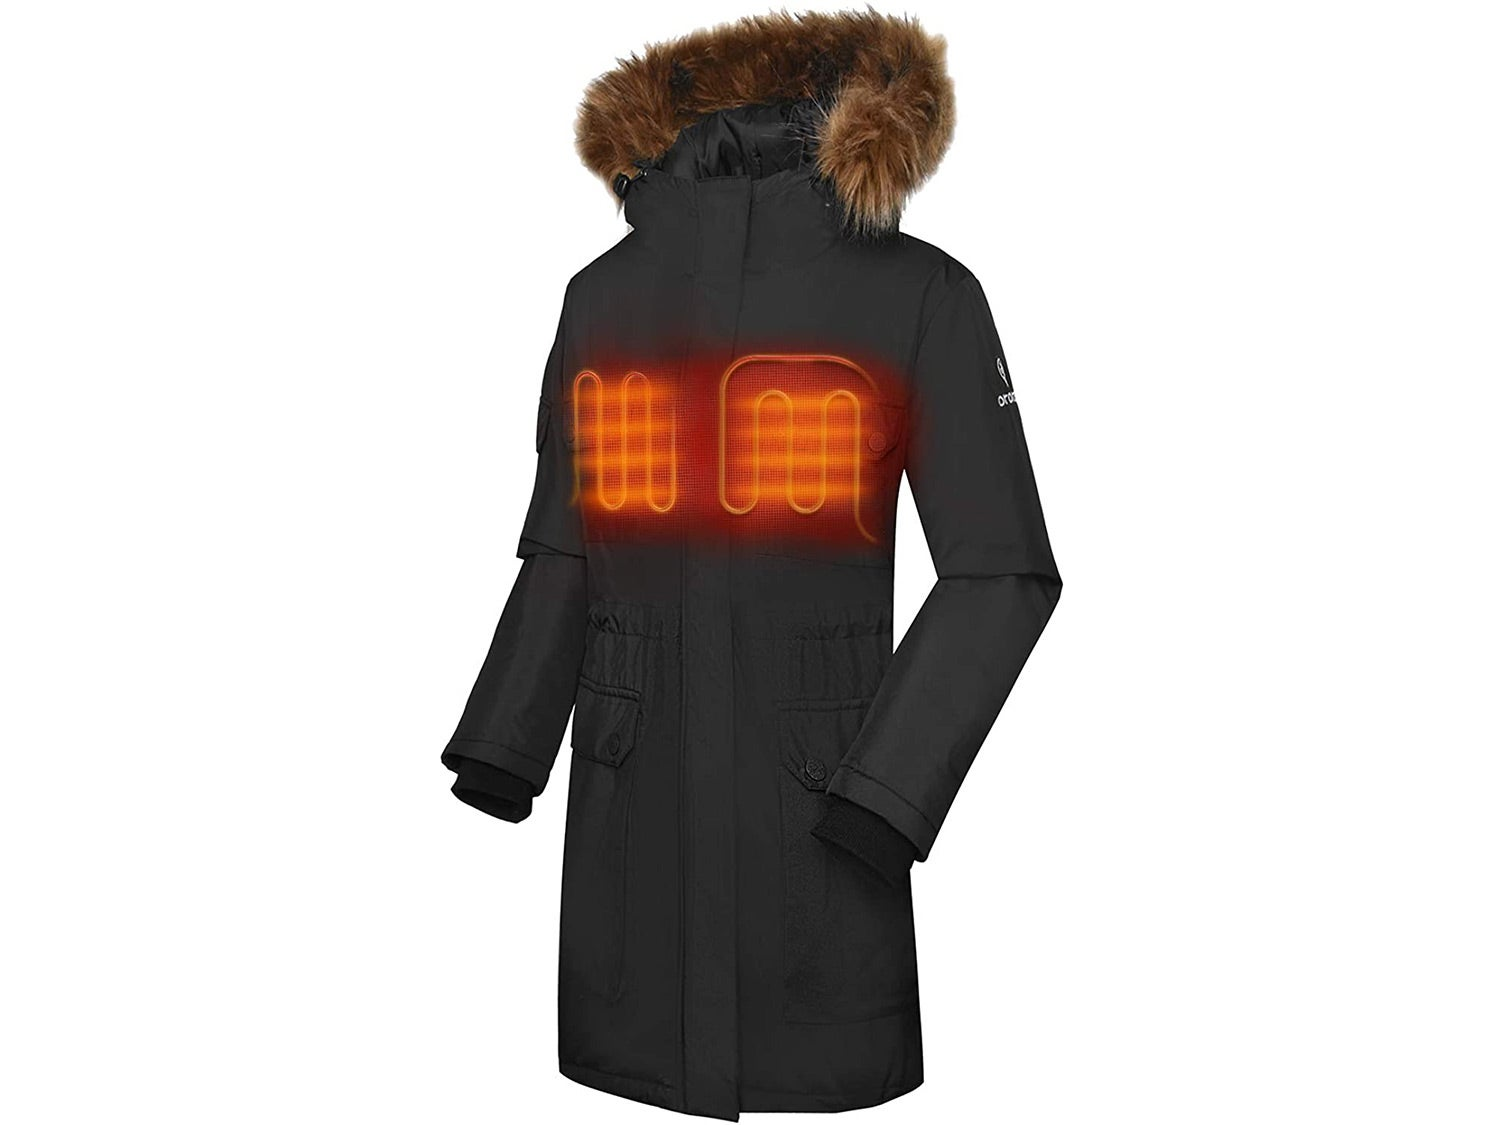 Ororo Women's Heated Parka Jacket with Thermolite Insulation